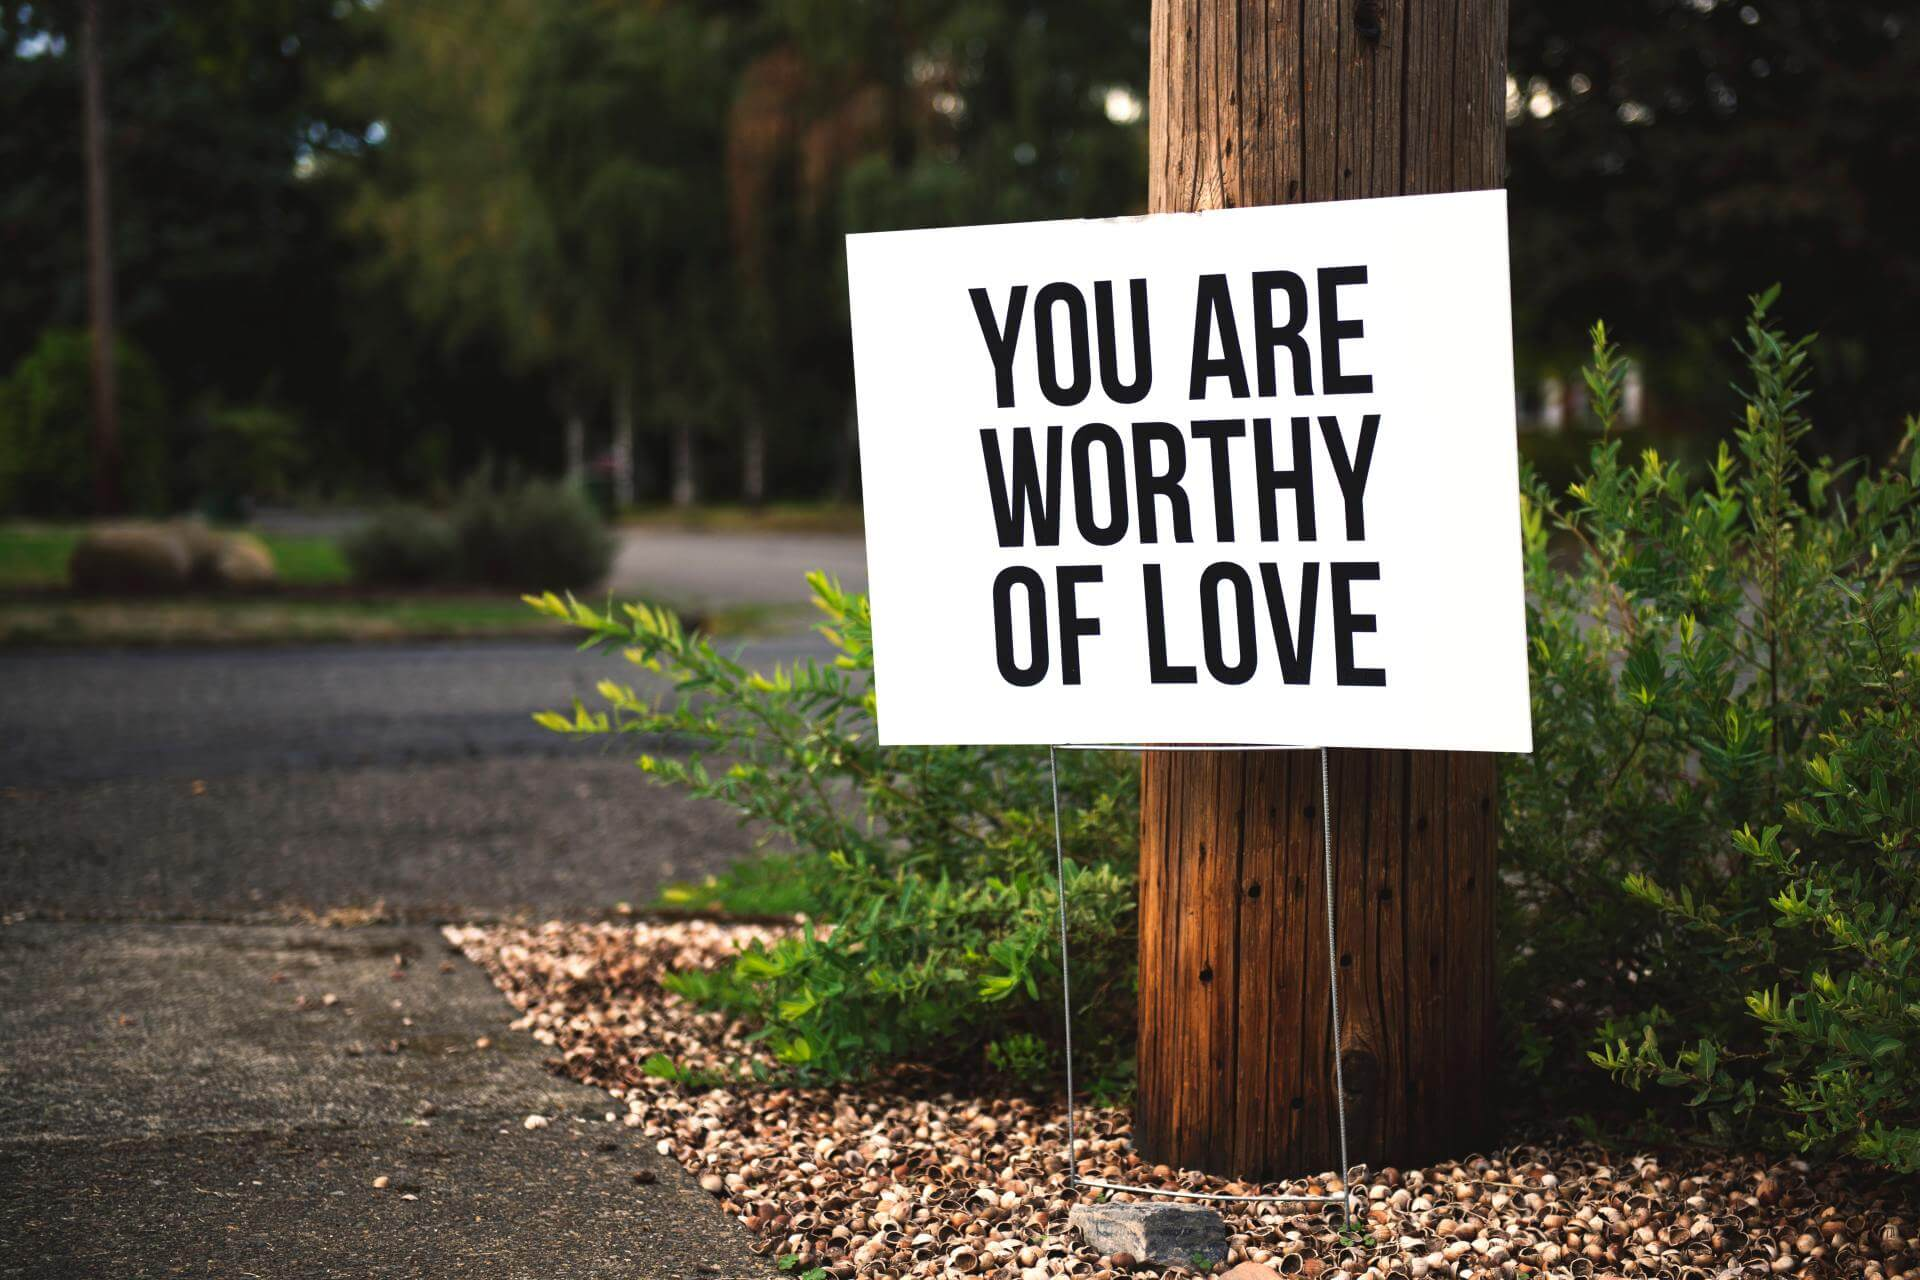 White yard picket sign in front of a large wooden telephone pole reads you are worthy of love